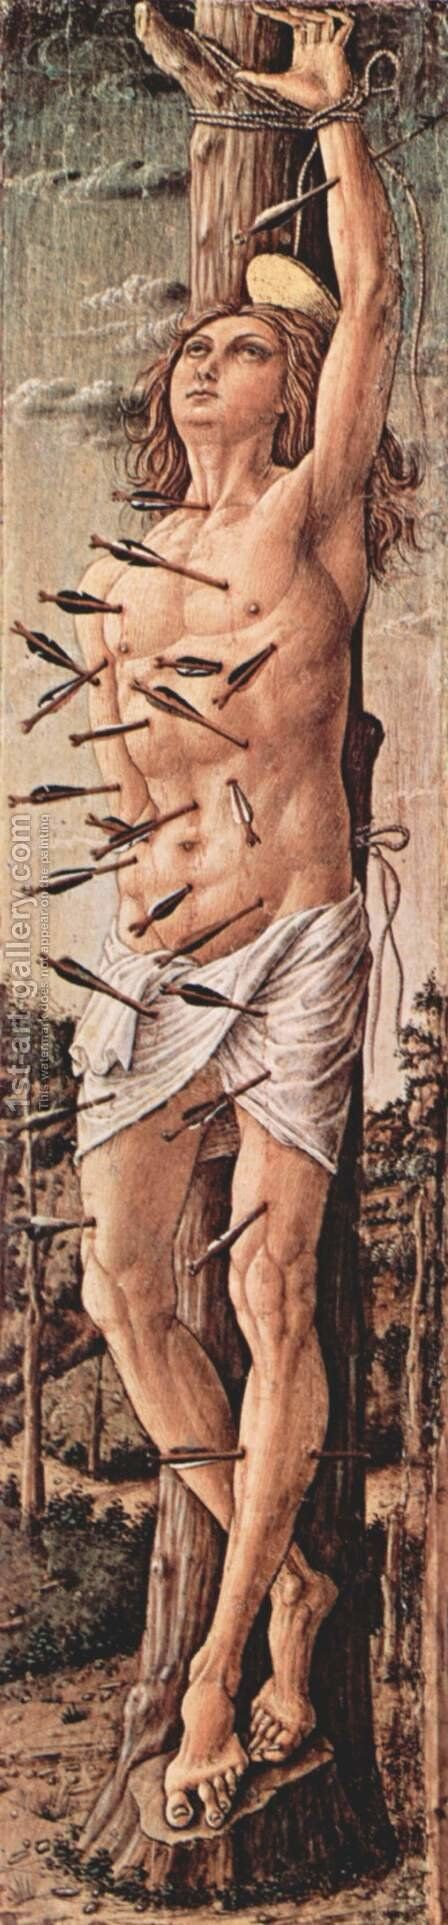 Saint Sebastian by Carlo Crivelli - Reproduction Oil Painting